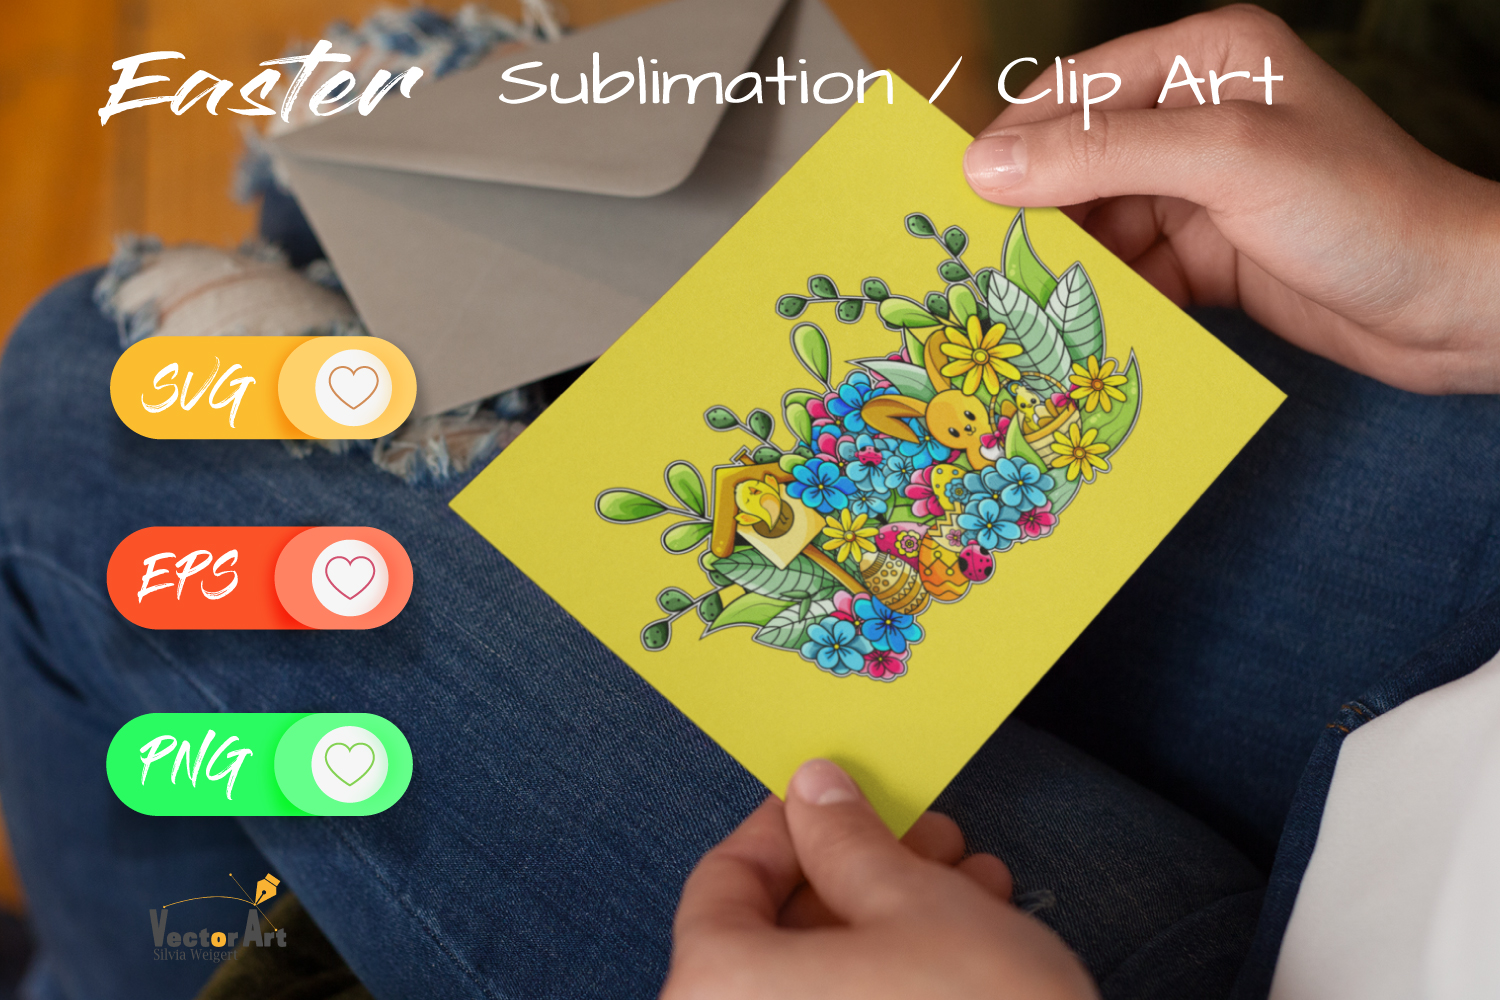 Happy Easter Illustration - Sublimation / Clip Art example image 4